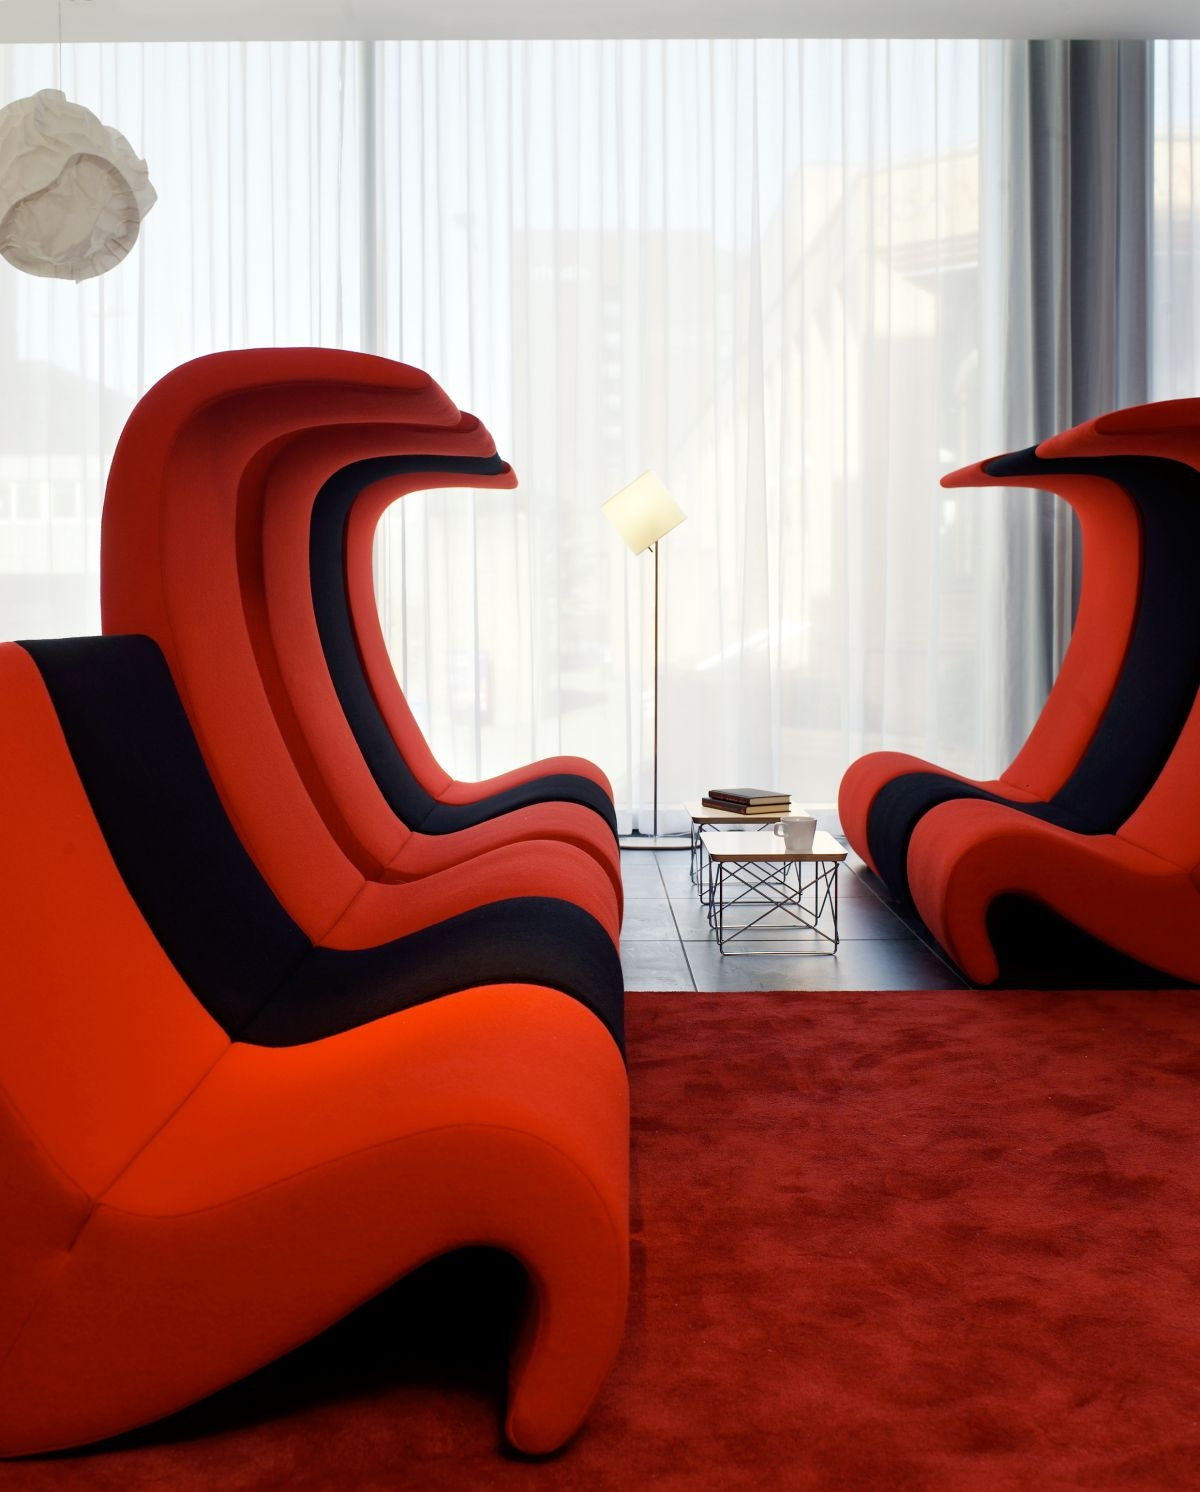 Nonsensical Contemporary Sofas Atlanta 4 Red Sofa Pouff Furniture Regarding Contemporary Sofa Chairs (Image 15 of 15)